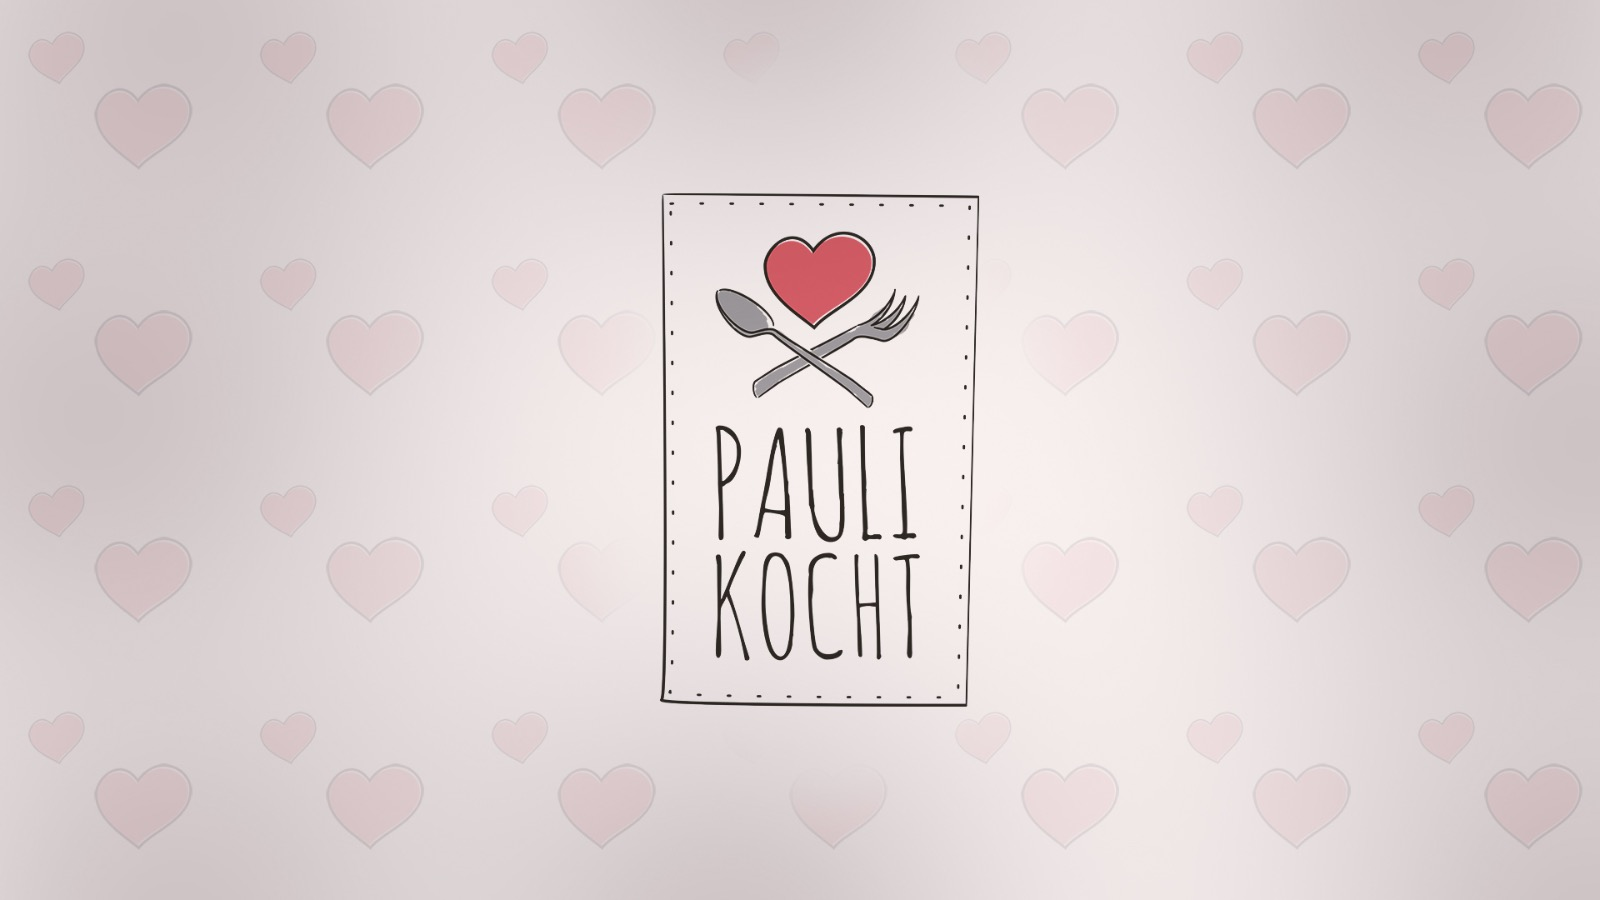 Follow Your Dreams Pauli Kocht